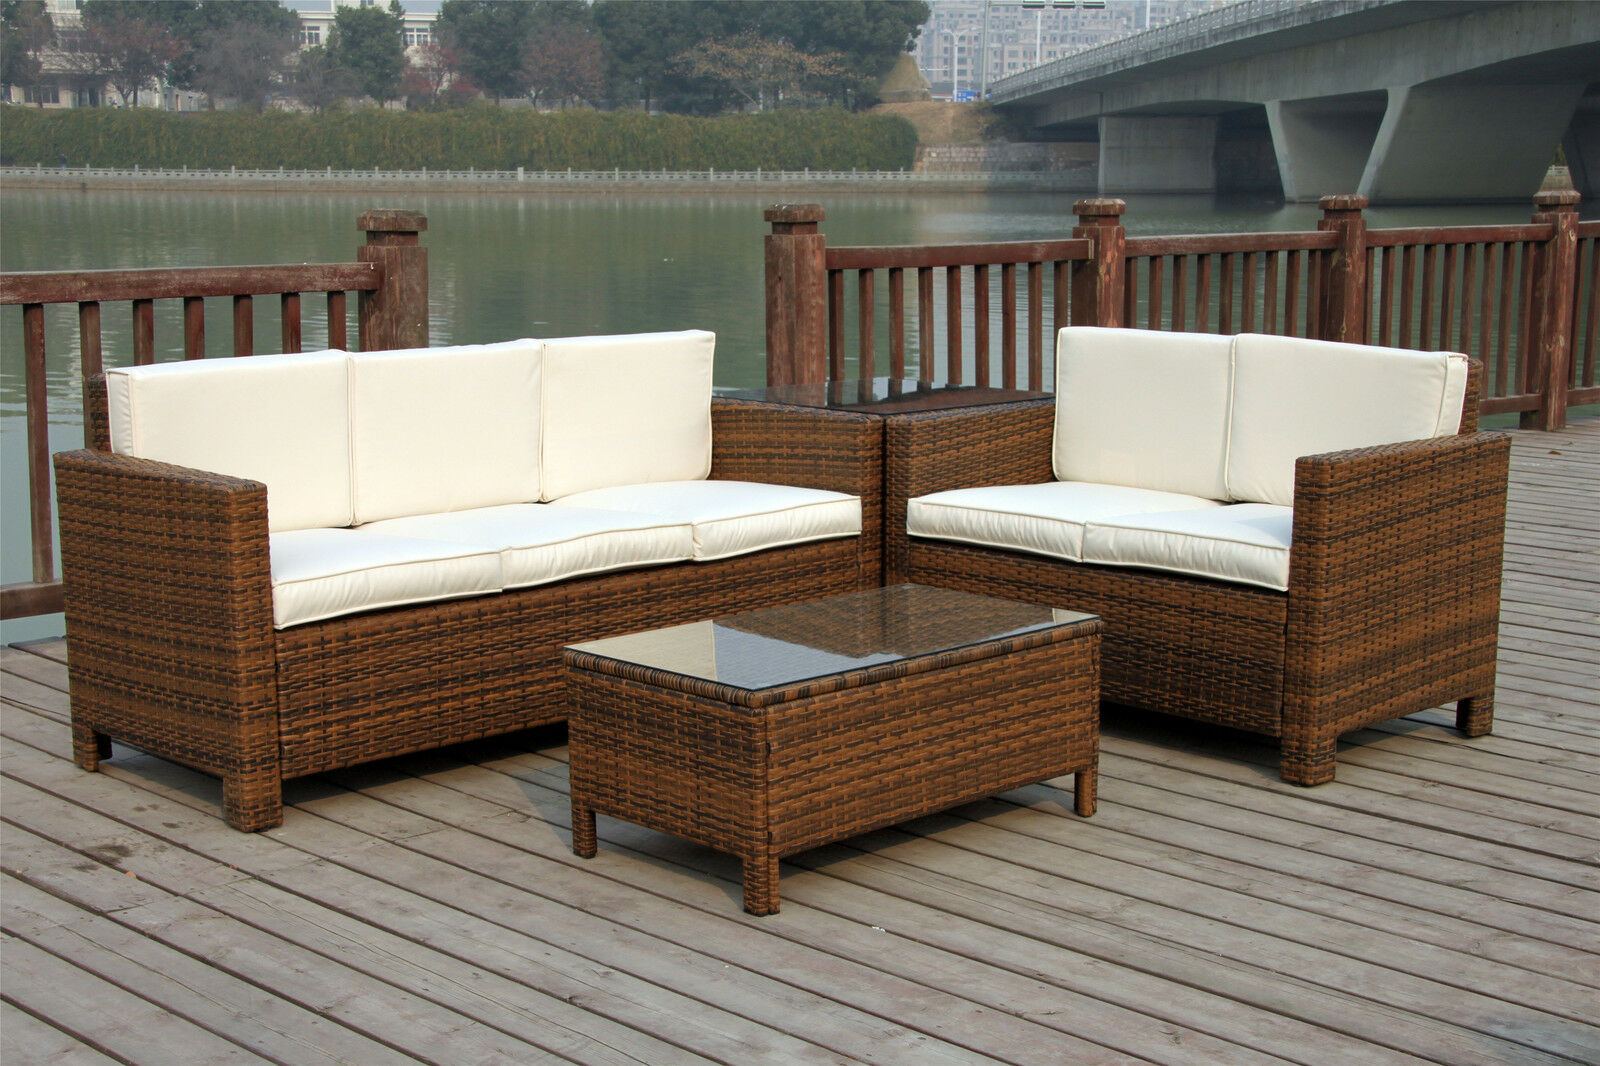 RATTAN GARDEN OUTDOOR WICKER PATIO FURNITURE CONSERVATORY